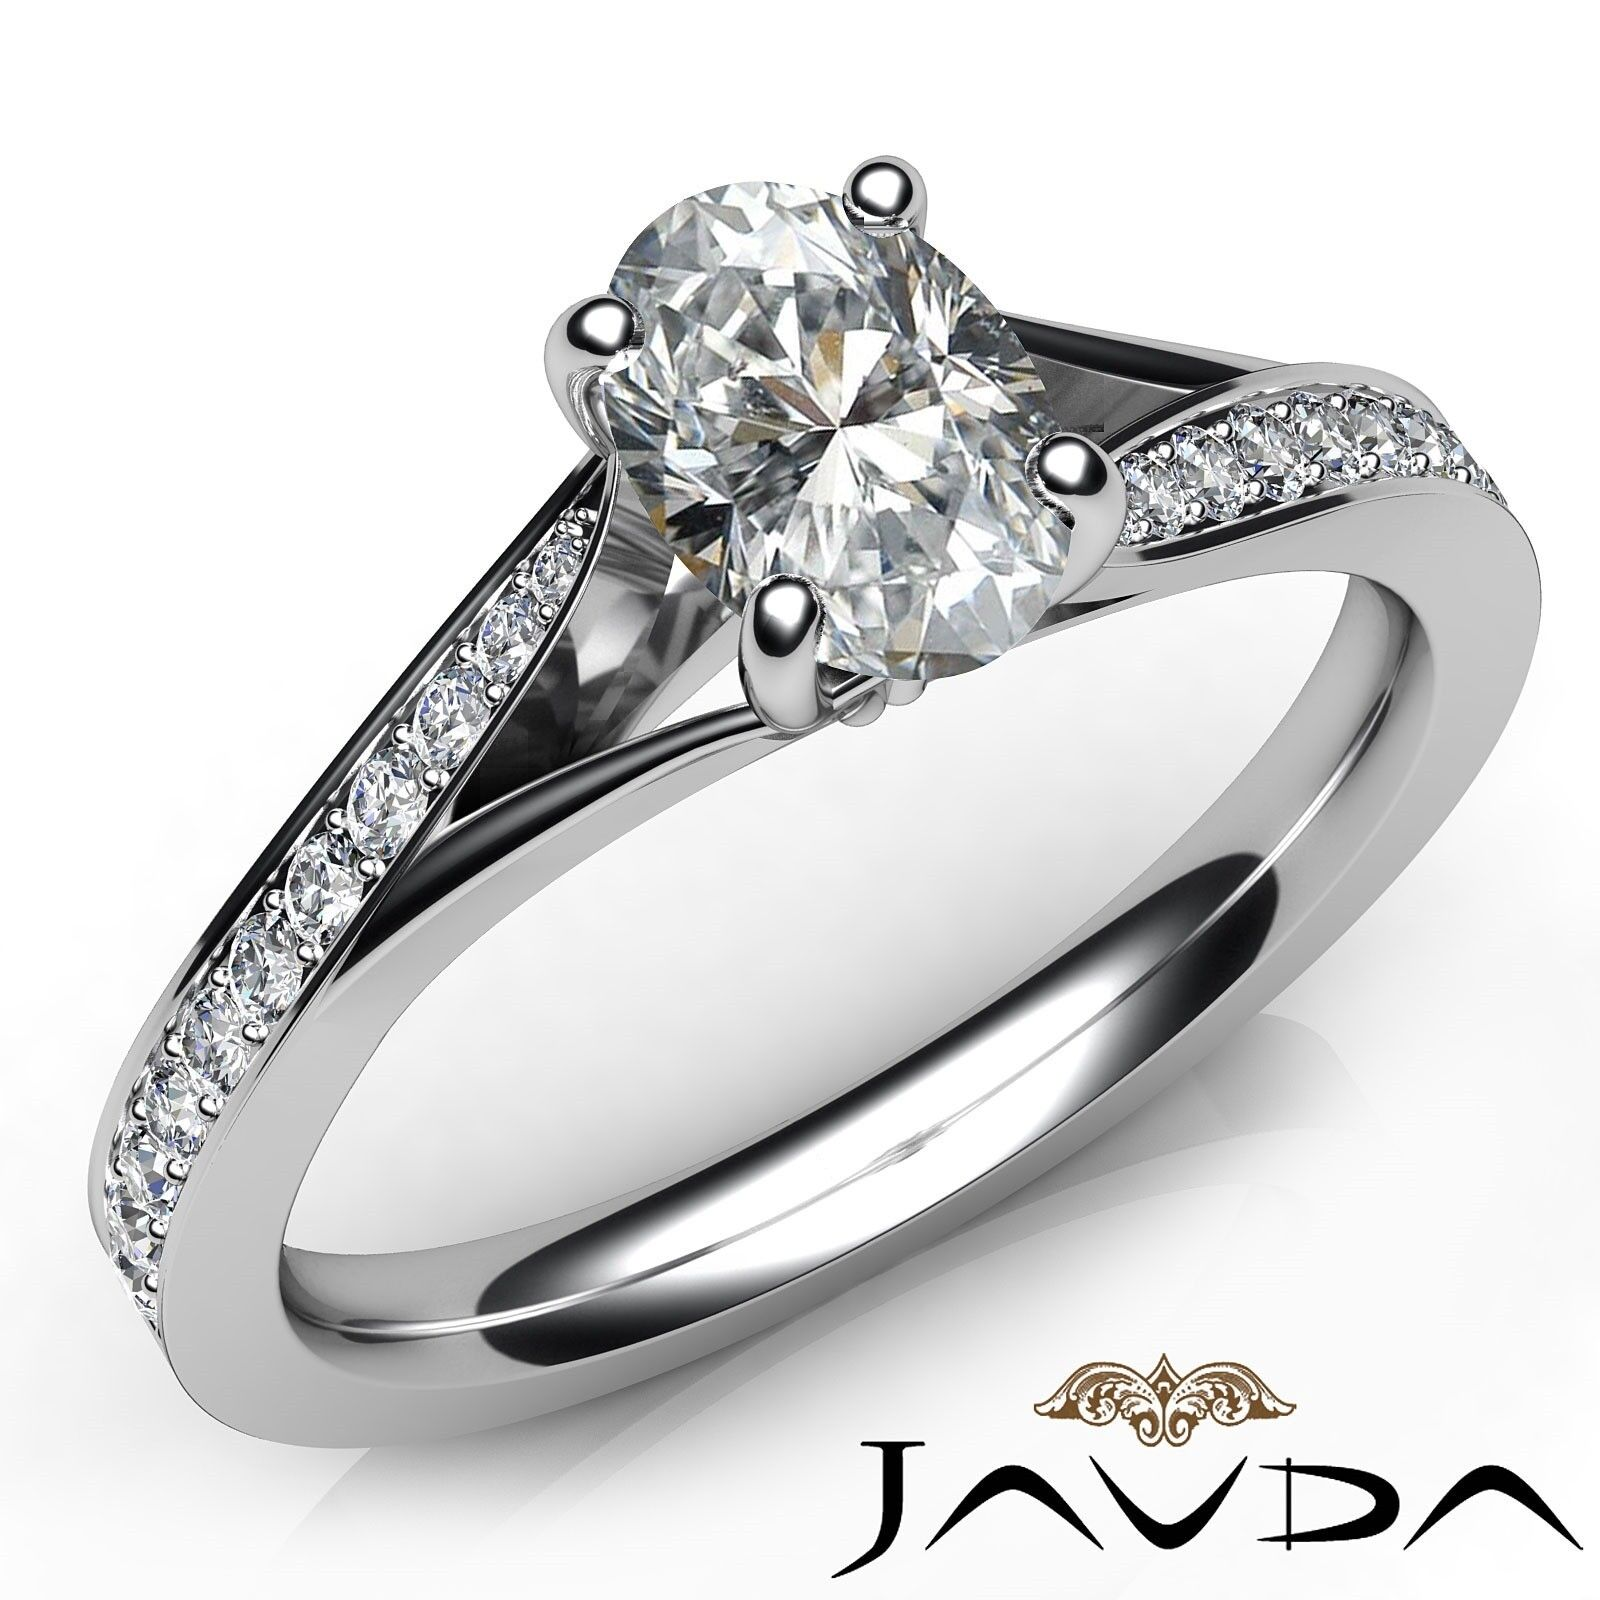 1.35ctw Comfort Fit Oval Diamond Engagement Ring GIA F-VS1 White Gold Women New